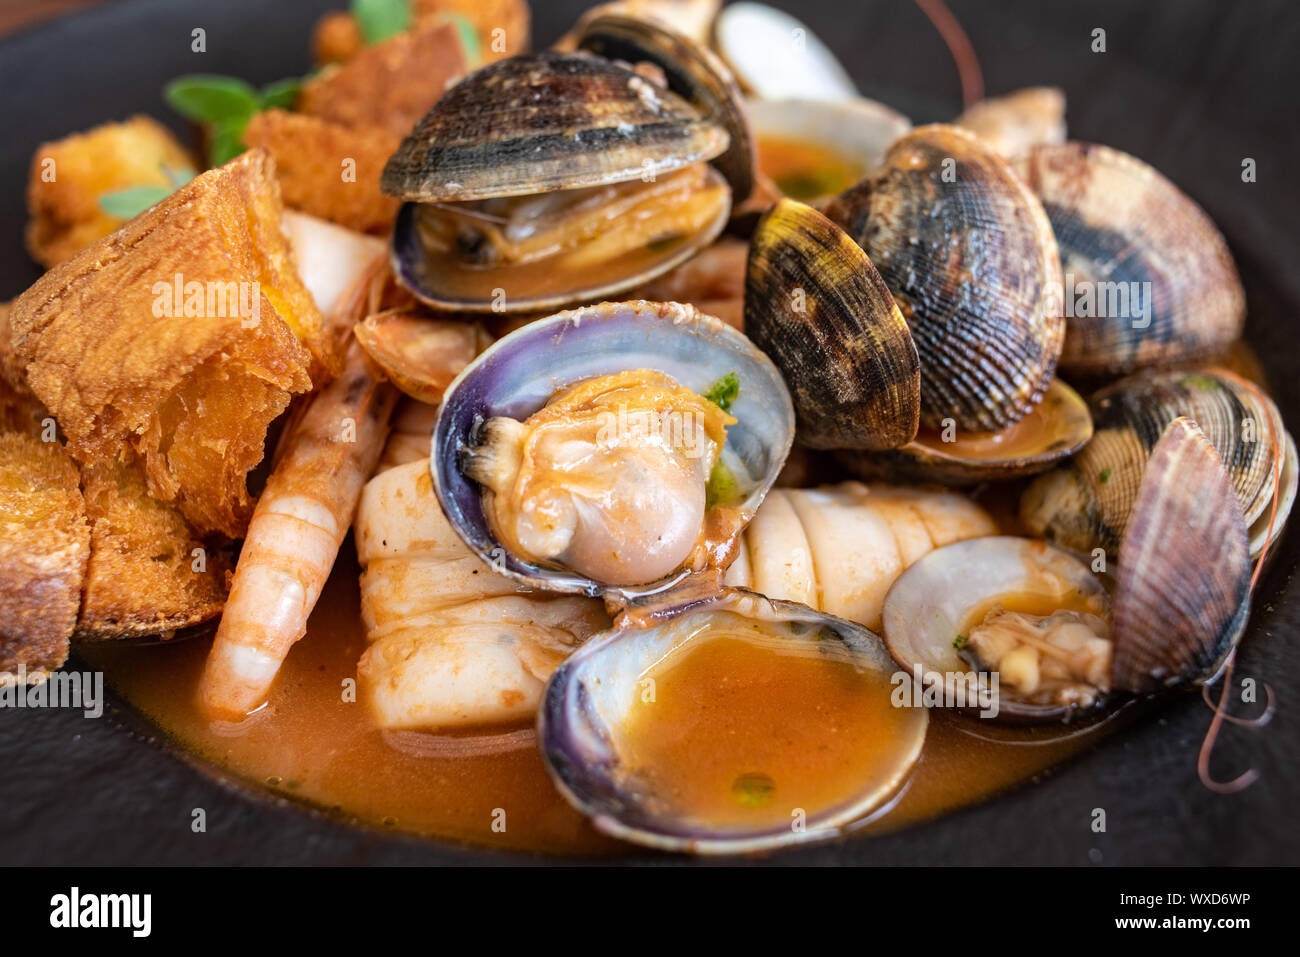 Fish soup, typical seafood dish of Italian cuisine. Stock Photo